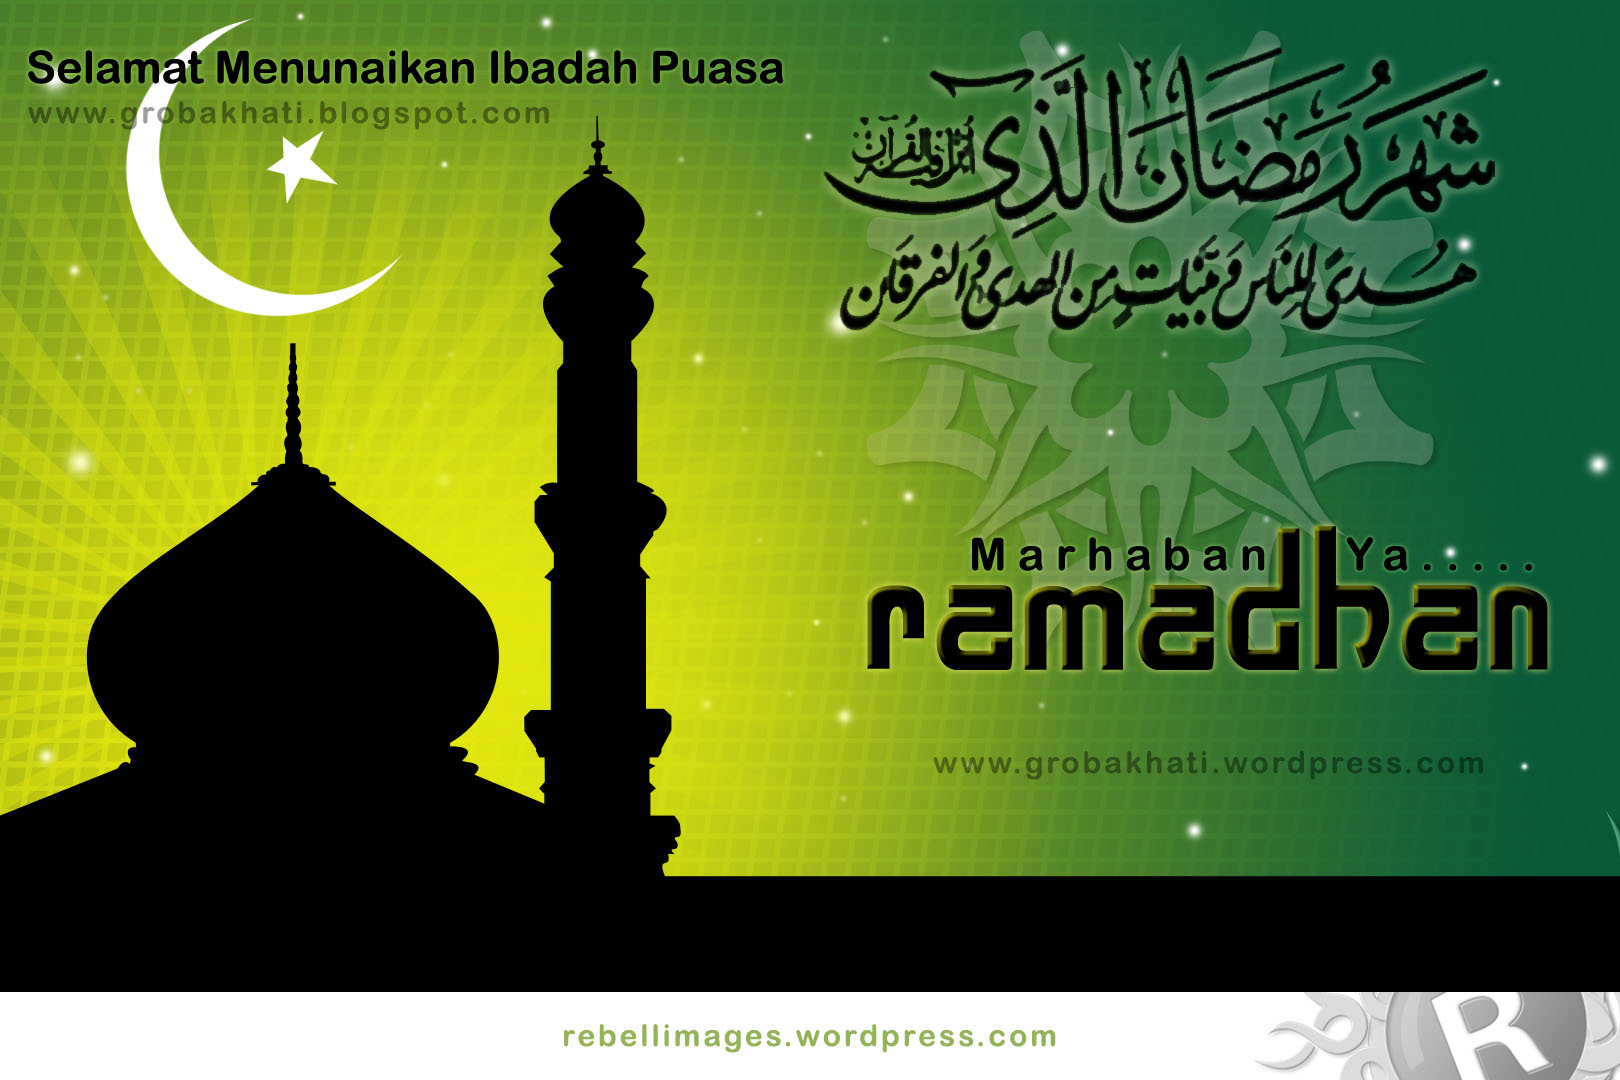 http://rebellimages.files.wordpress.com/2010/07/marhaban-ya-ramadhan.jpg